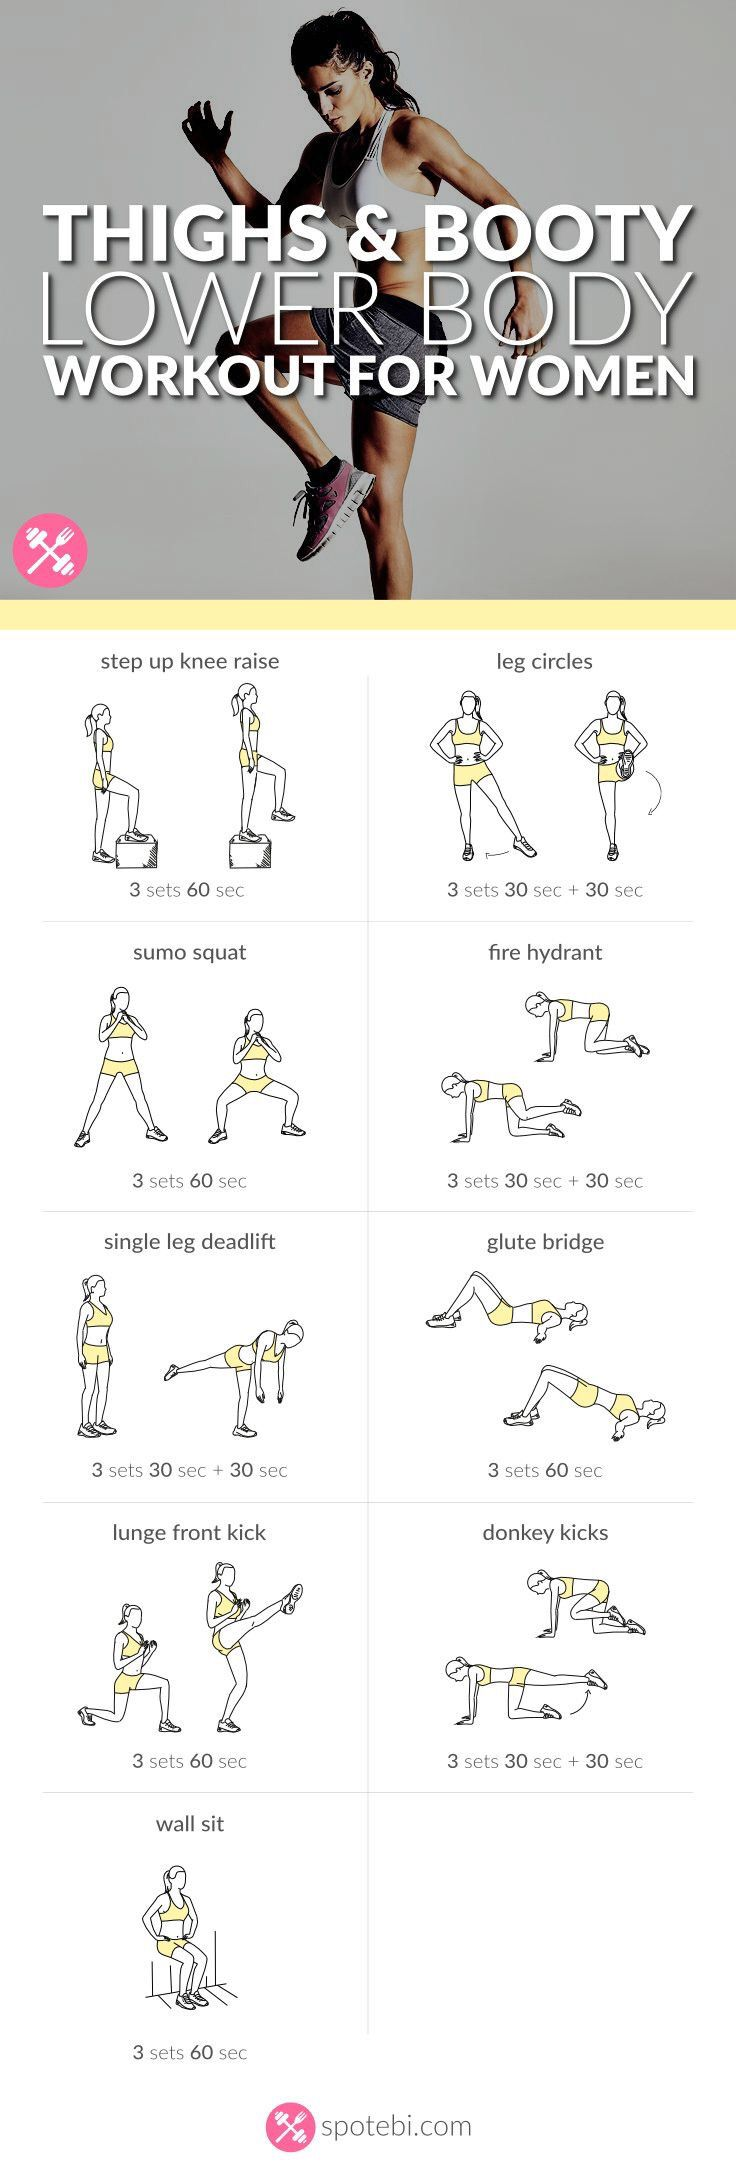 Thighs and Bum Low Body Workout | Posted By: CustomWeightLossProgram.com